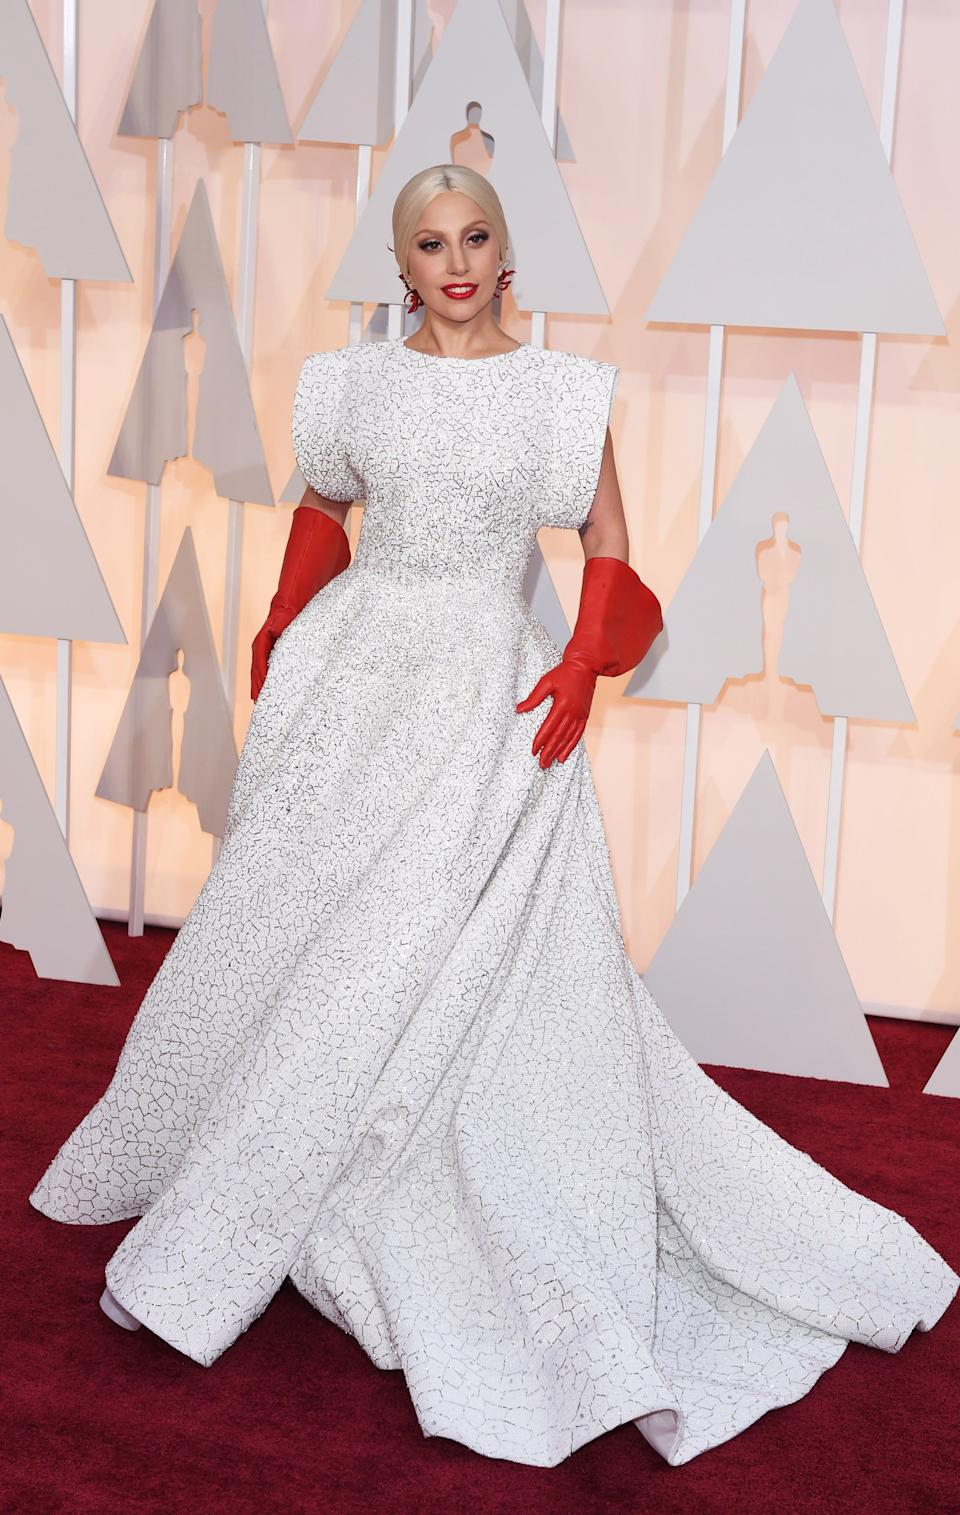 """Gaga wears a white gown by Alaia and <a href=""""http://stylecaster.com/best-memes-about-lady-gaga-red-gloves-at-2015-oscars/"""" target=""""_blank"""" rel=""""noopener noreferrer"""">a pair of meme-worthy red gloves</a> on the red carpet at the 2015 Oscars."""